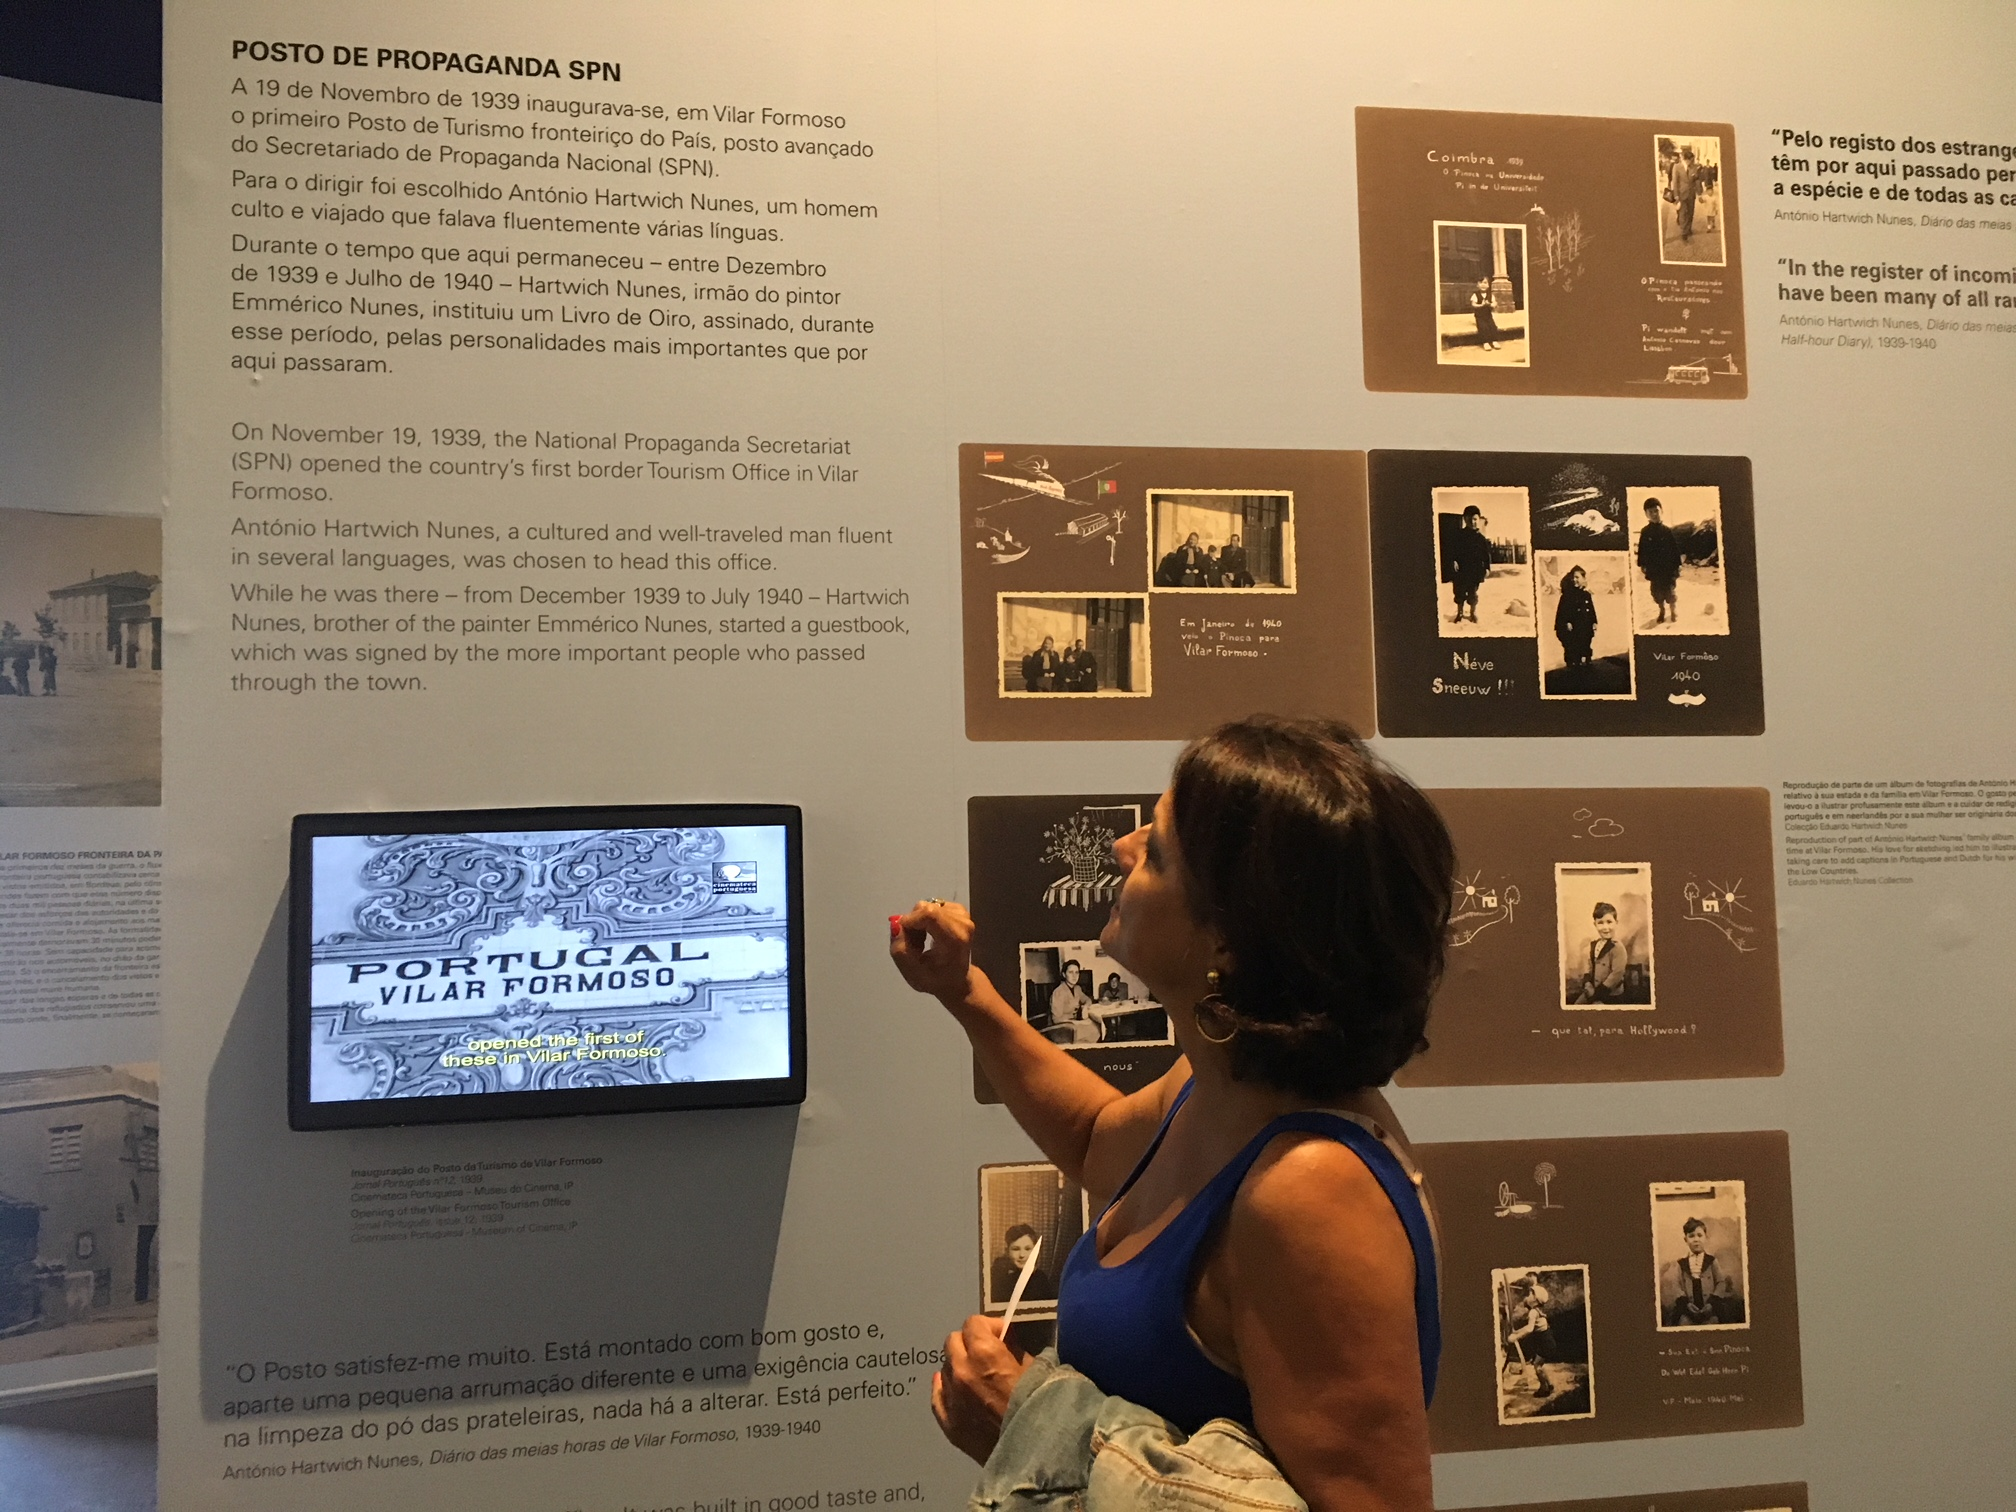 Frontiere da Paz   (Frontier of Peace) Museum at Vilar Formoso, #Portugal  Architecture and museography:   Luísa Pacheco Marques (pictured above) with Milena Raposo and João Gomes  Commissioner and Research:  Margarida de Magalhães Ramalho